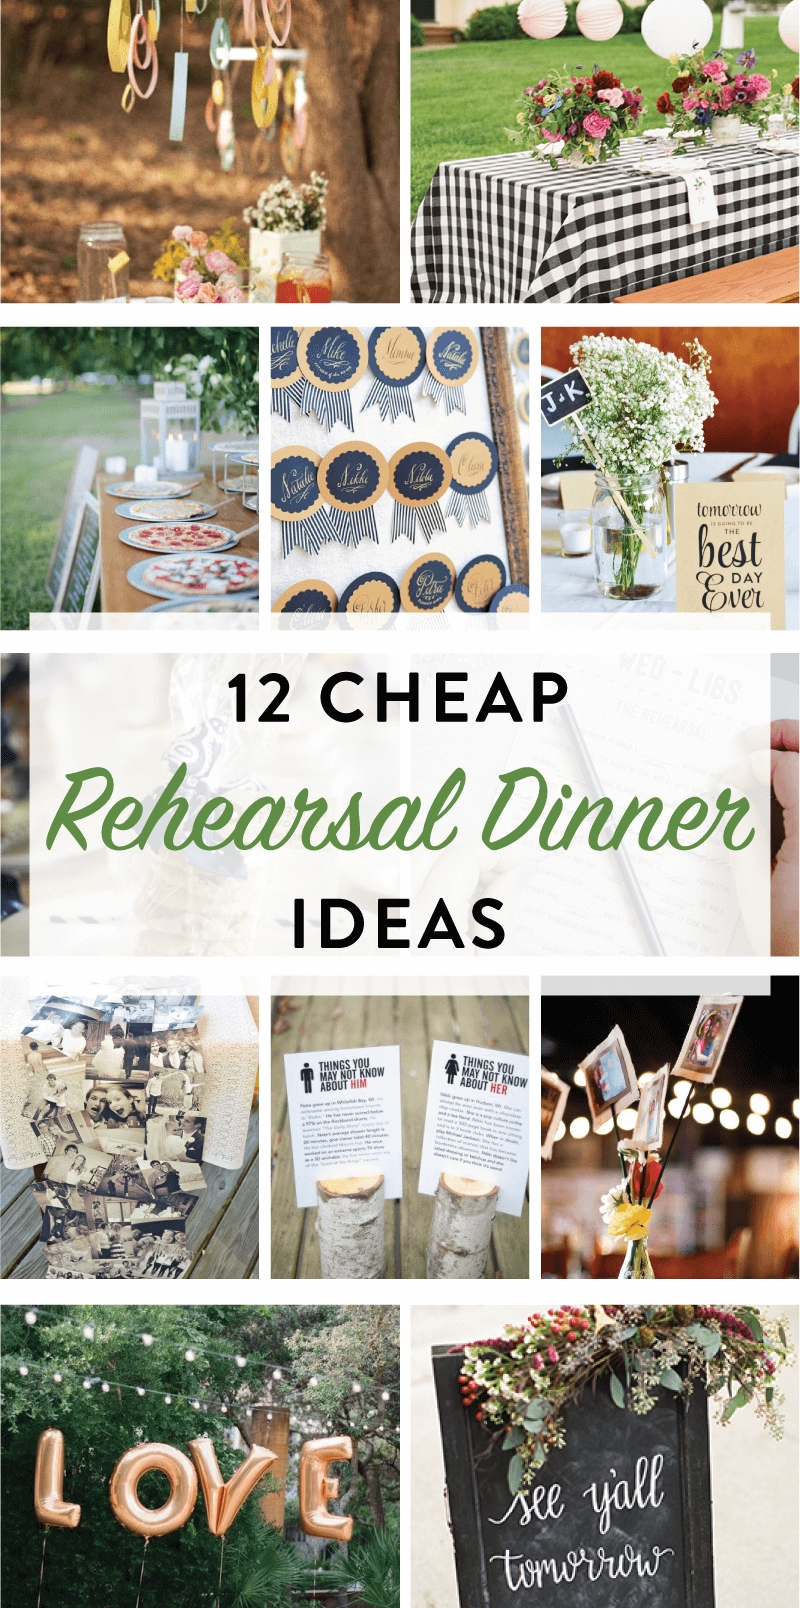 10 Lovely Wedding Rehearsal Dinner Ideas On A Budget 12 cheap rehearsal dinner ideas for the modern bride on rehearsal 2020